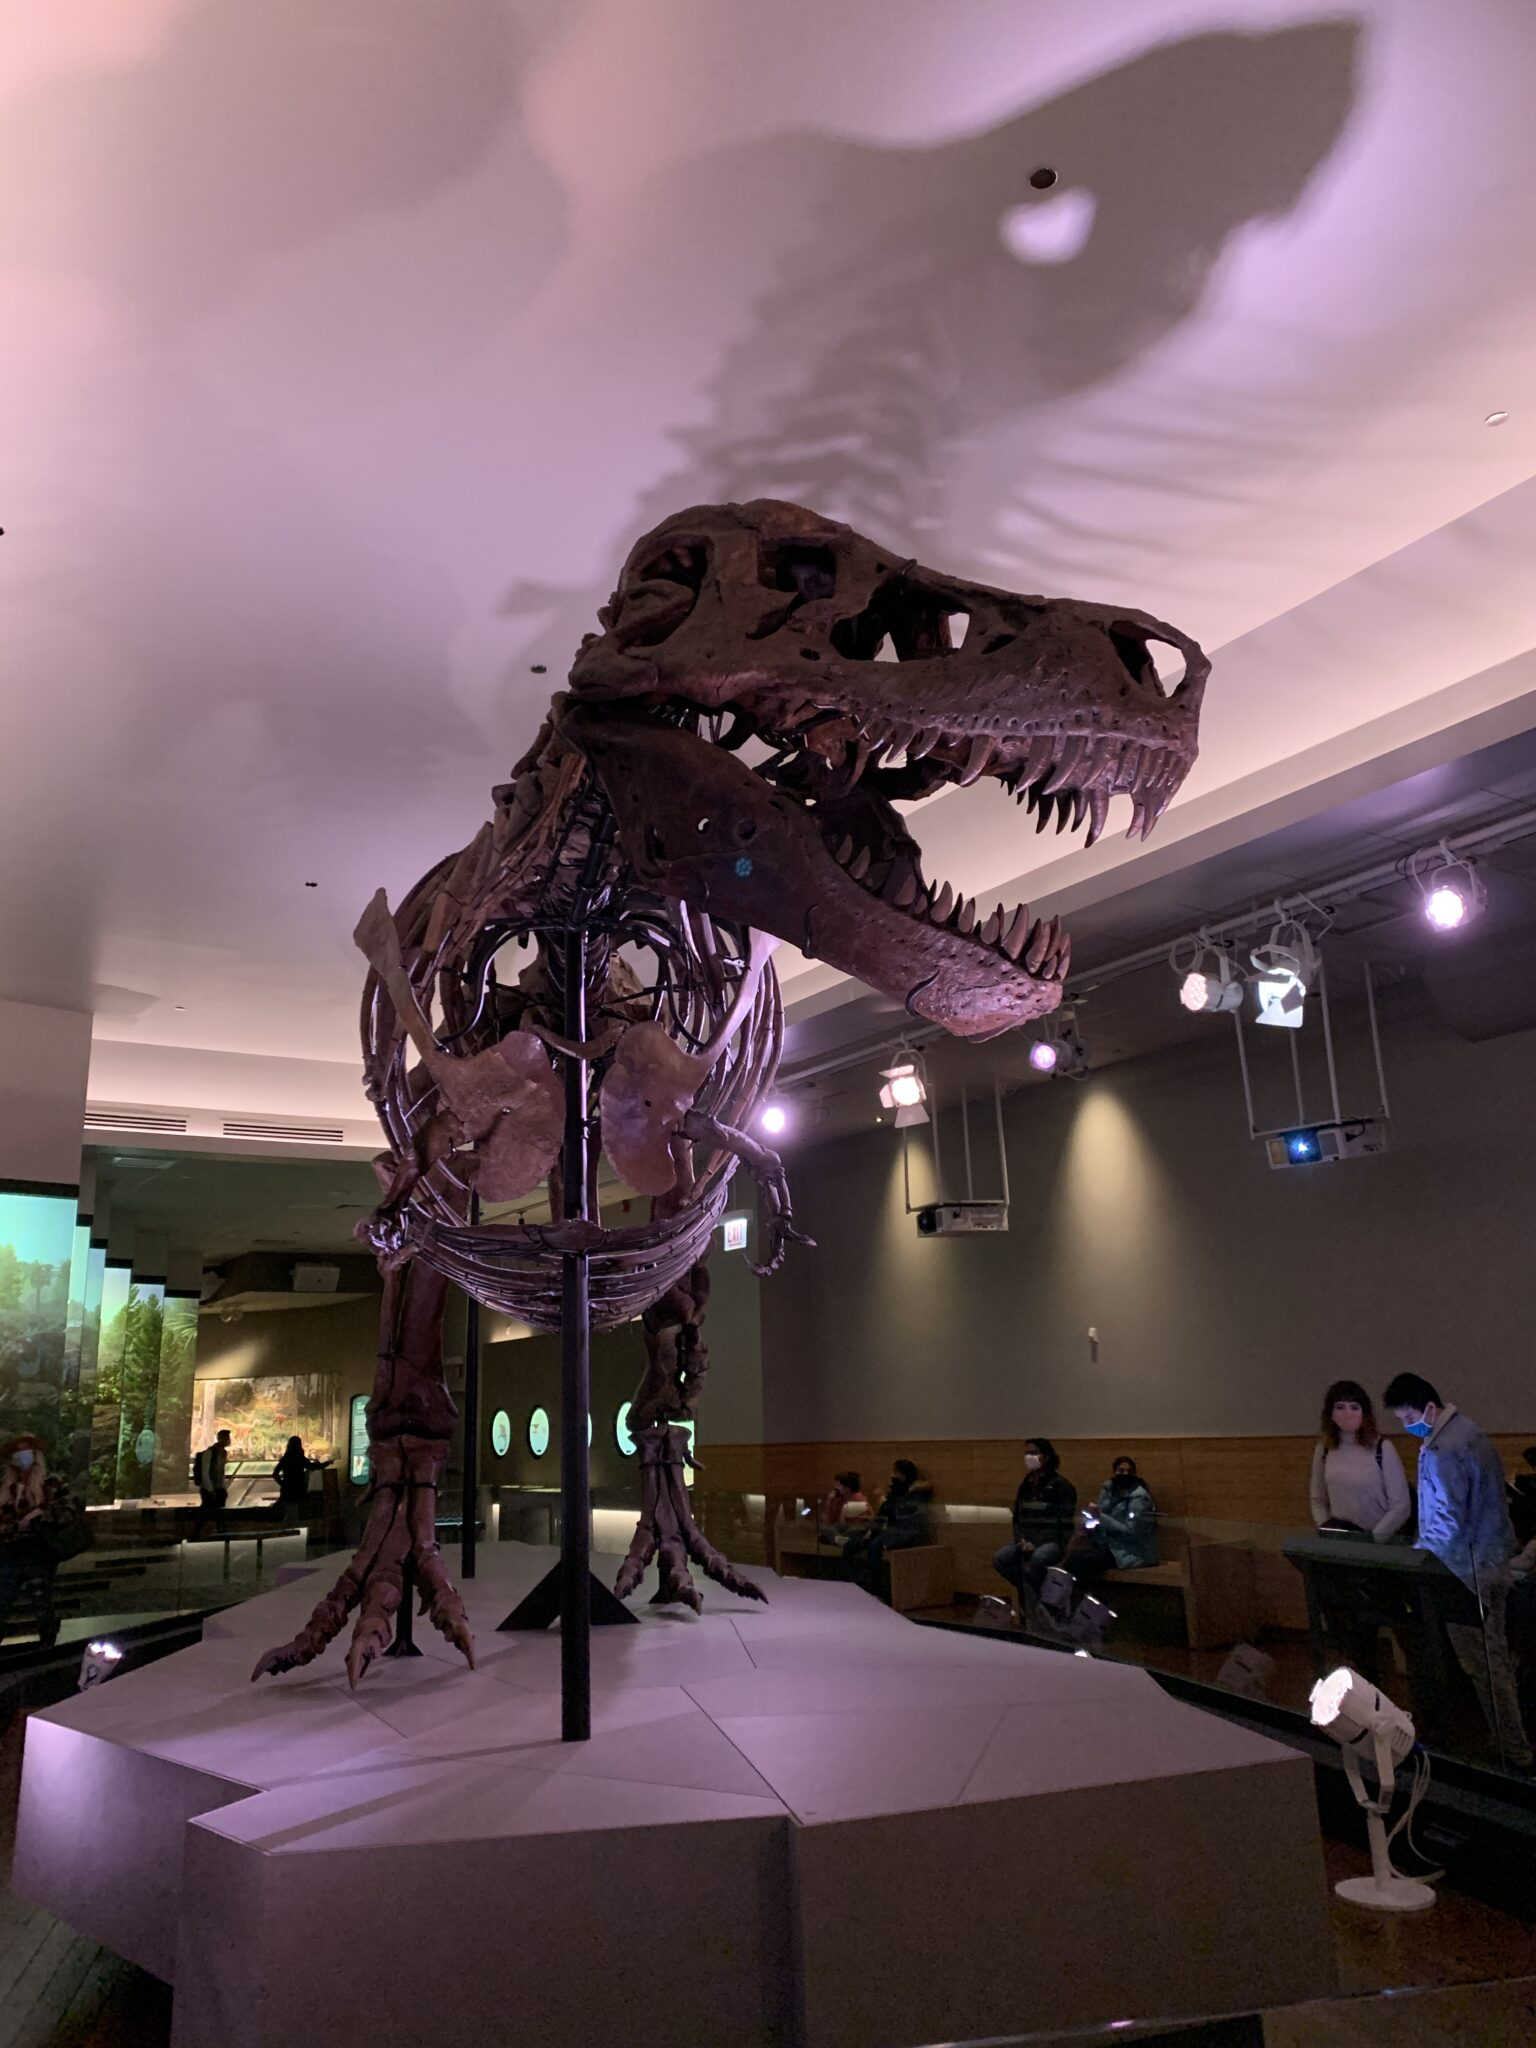 Burgundy Blazer by popular Chicago fashion blog, Glass of Glam: image of Sue the T-Rex at the Chicago Field Museum.